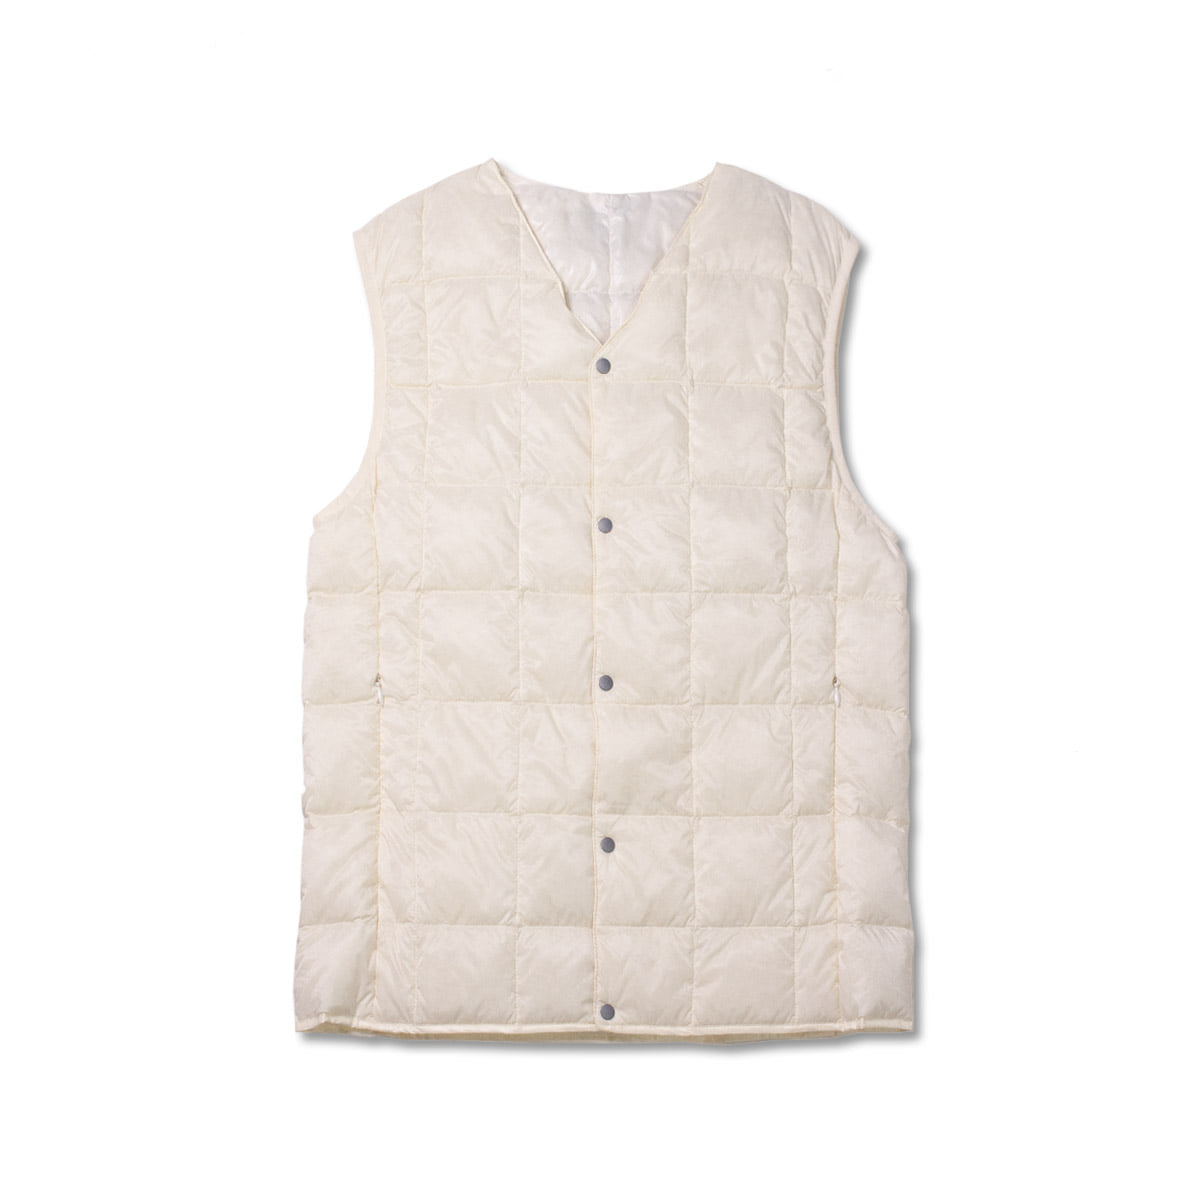 [TAION]  V NECK BUTTON DOWN VEST (TAION-001) 'WHITE'